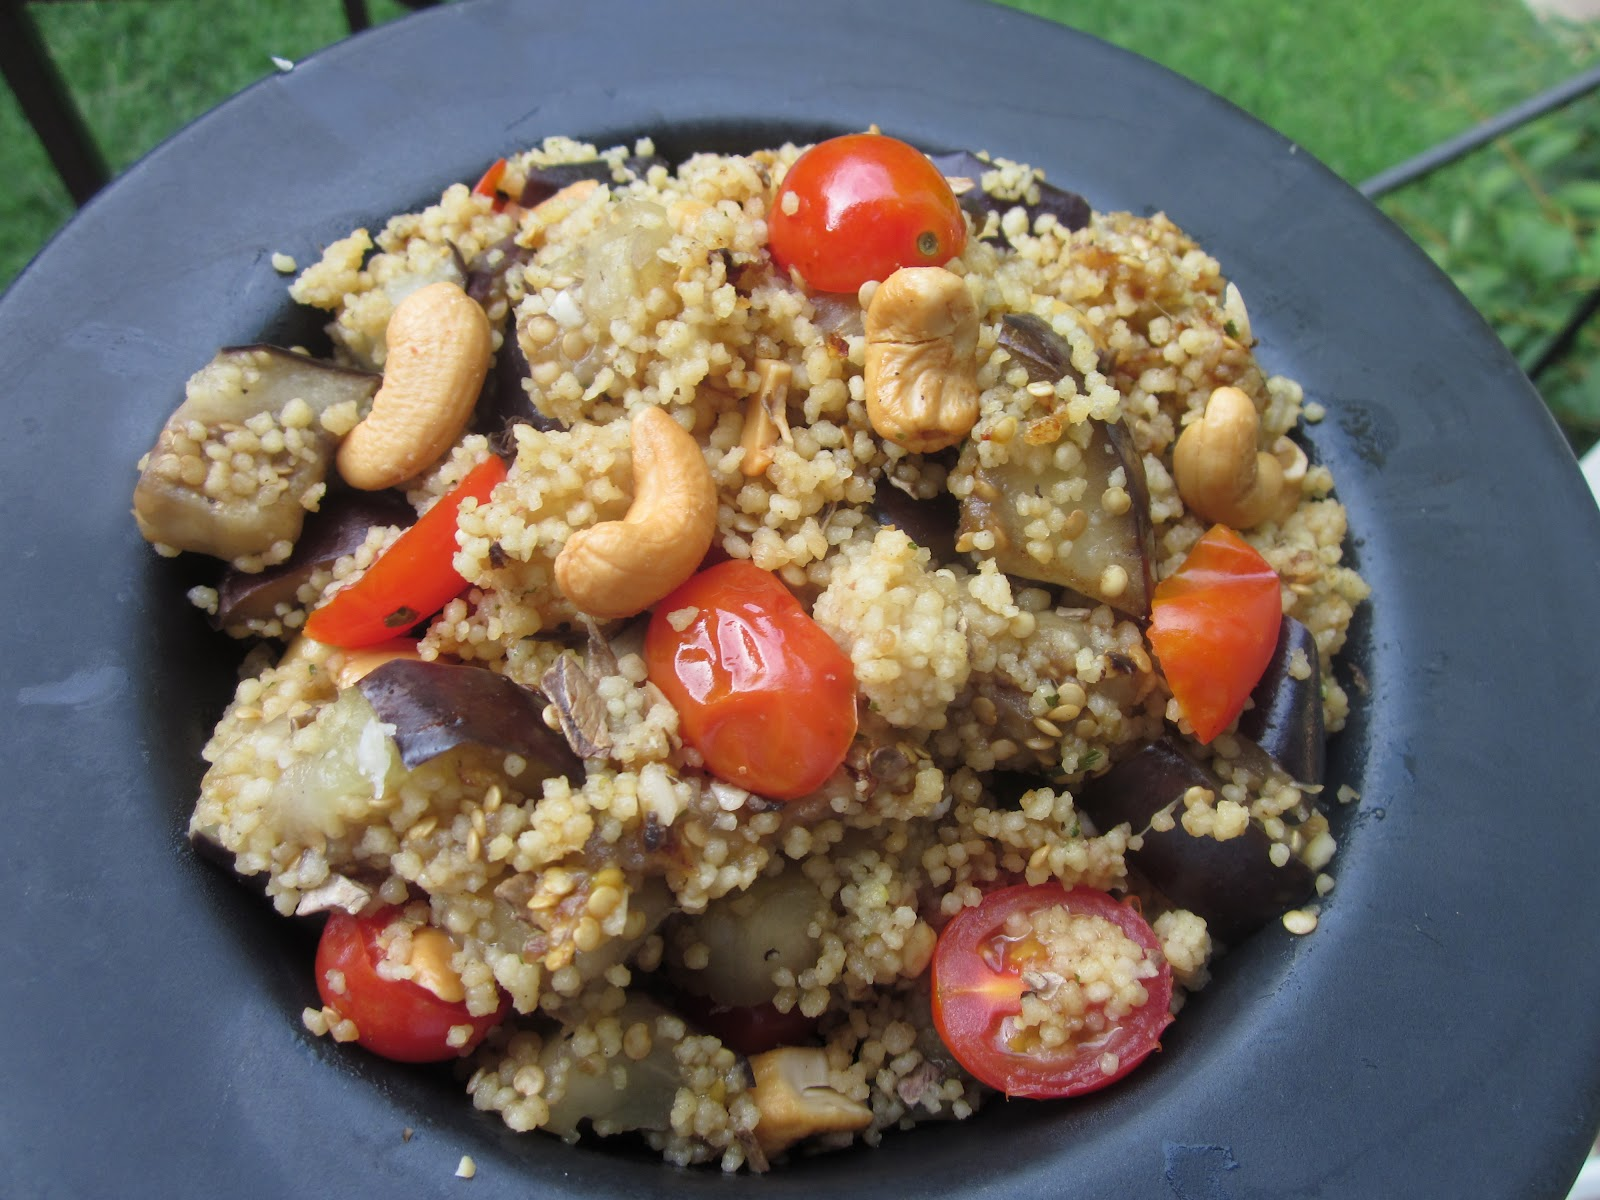 Dinner was wild mushroom couscous tossed with sauteed eggplant, grape ...